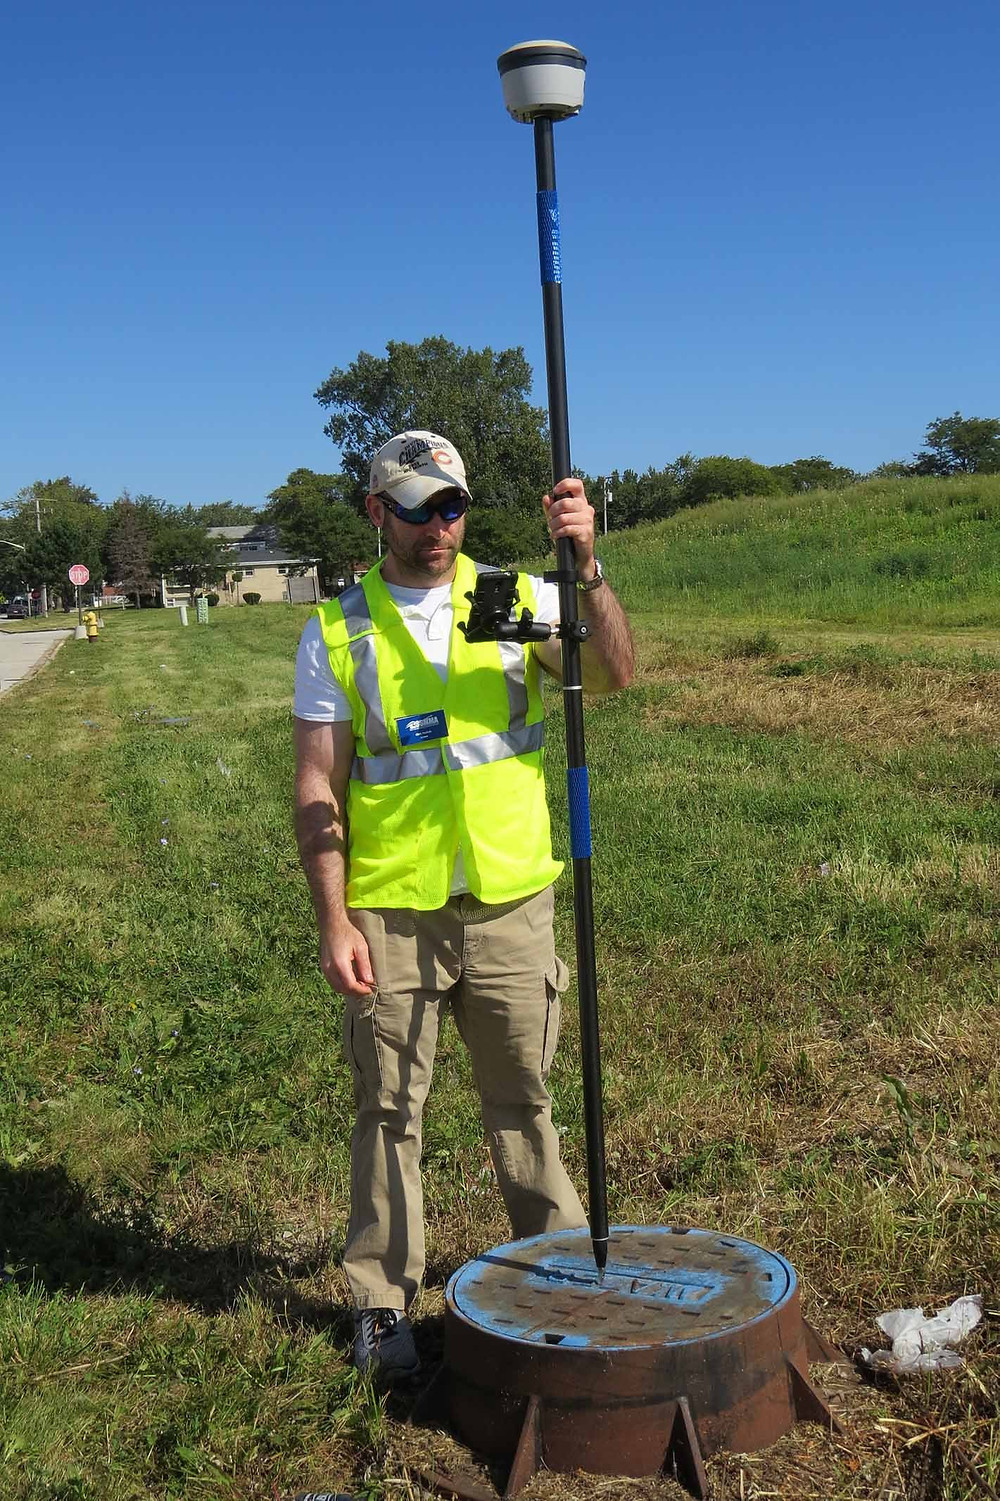 GIS Analyst Chris Poshek uses a new GPS unit in Calumet Park to capture infrastructure data for mapping.